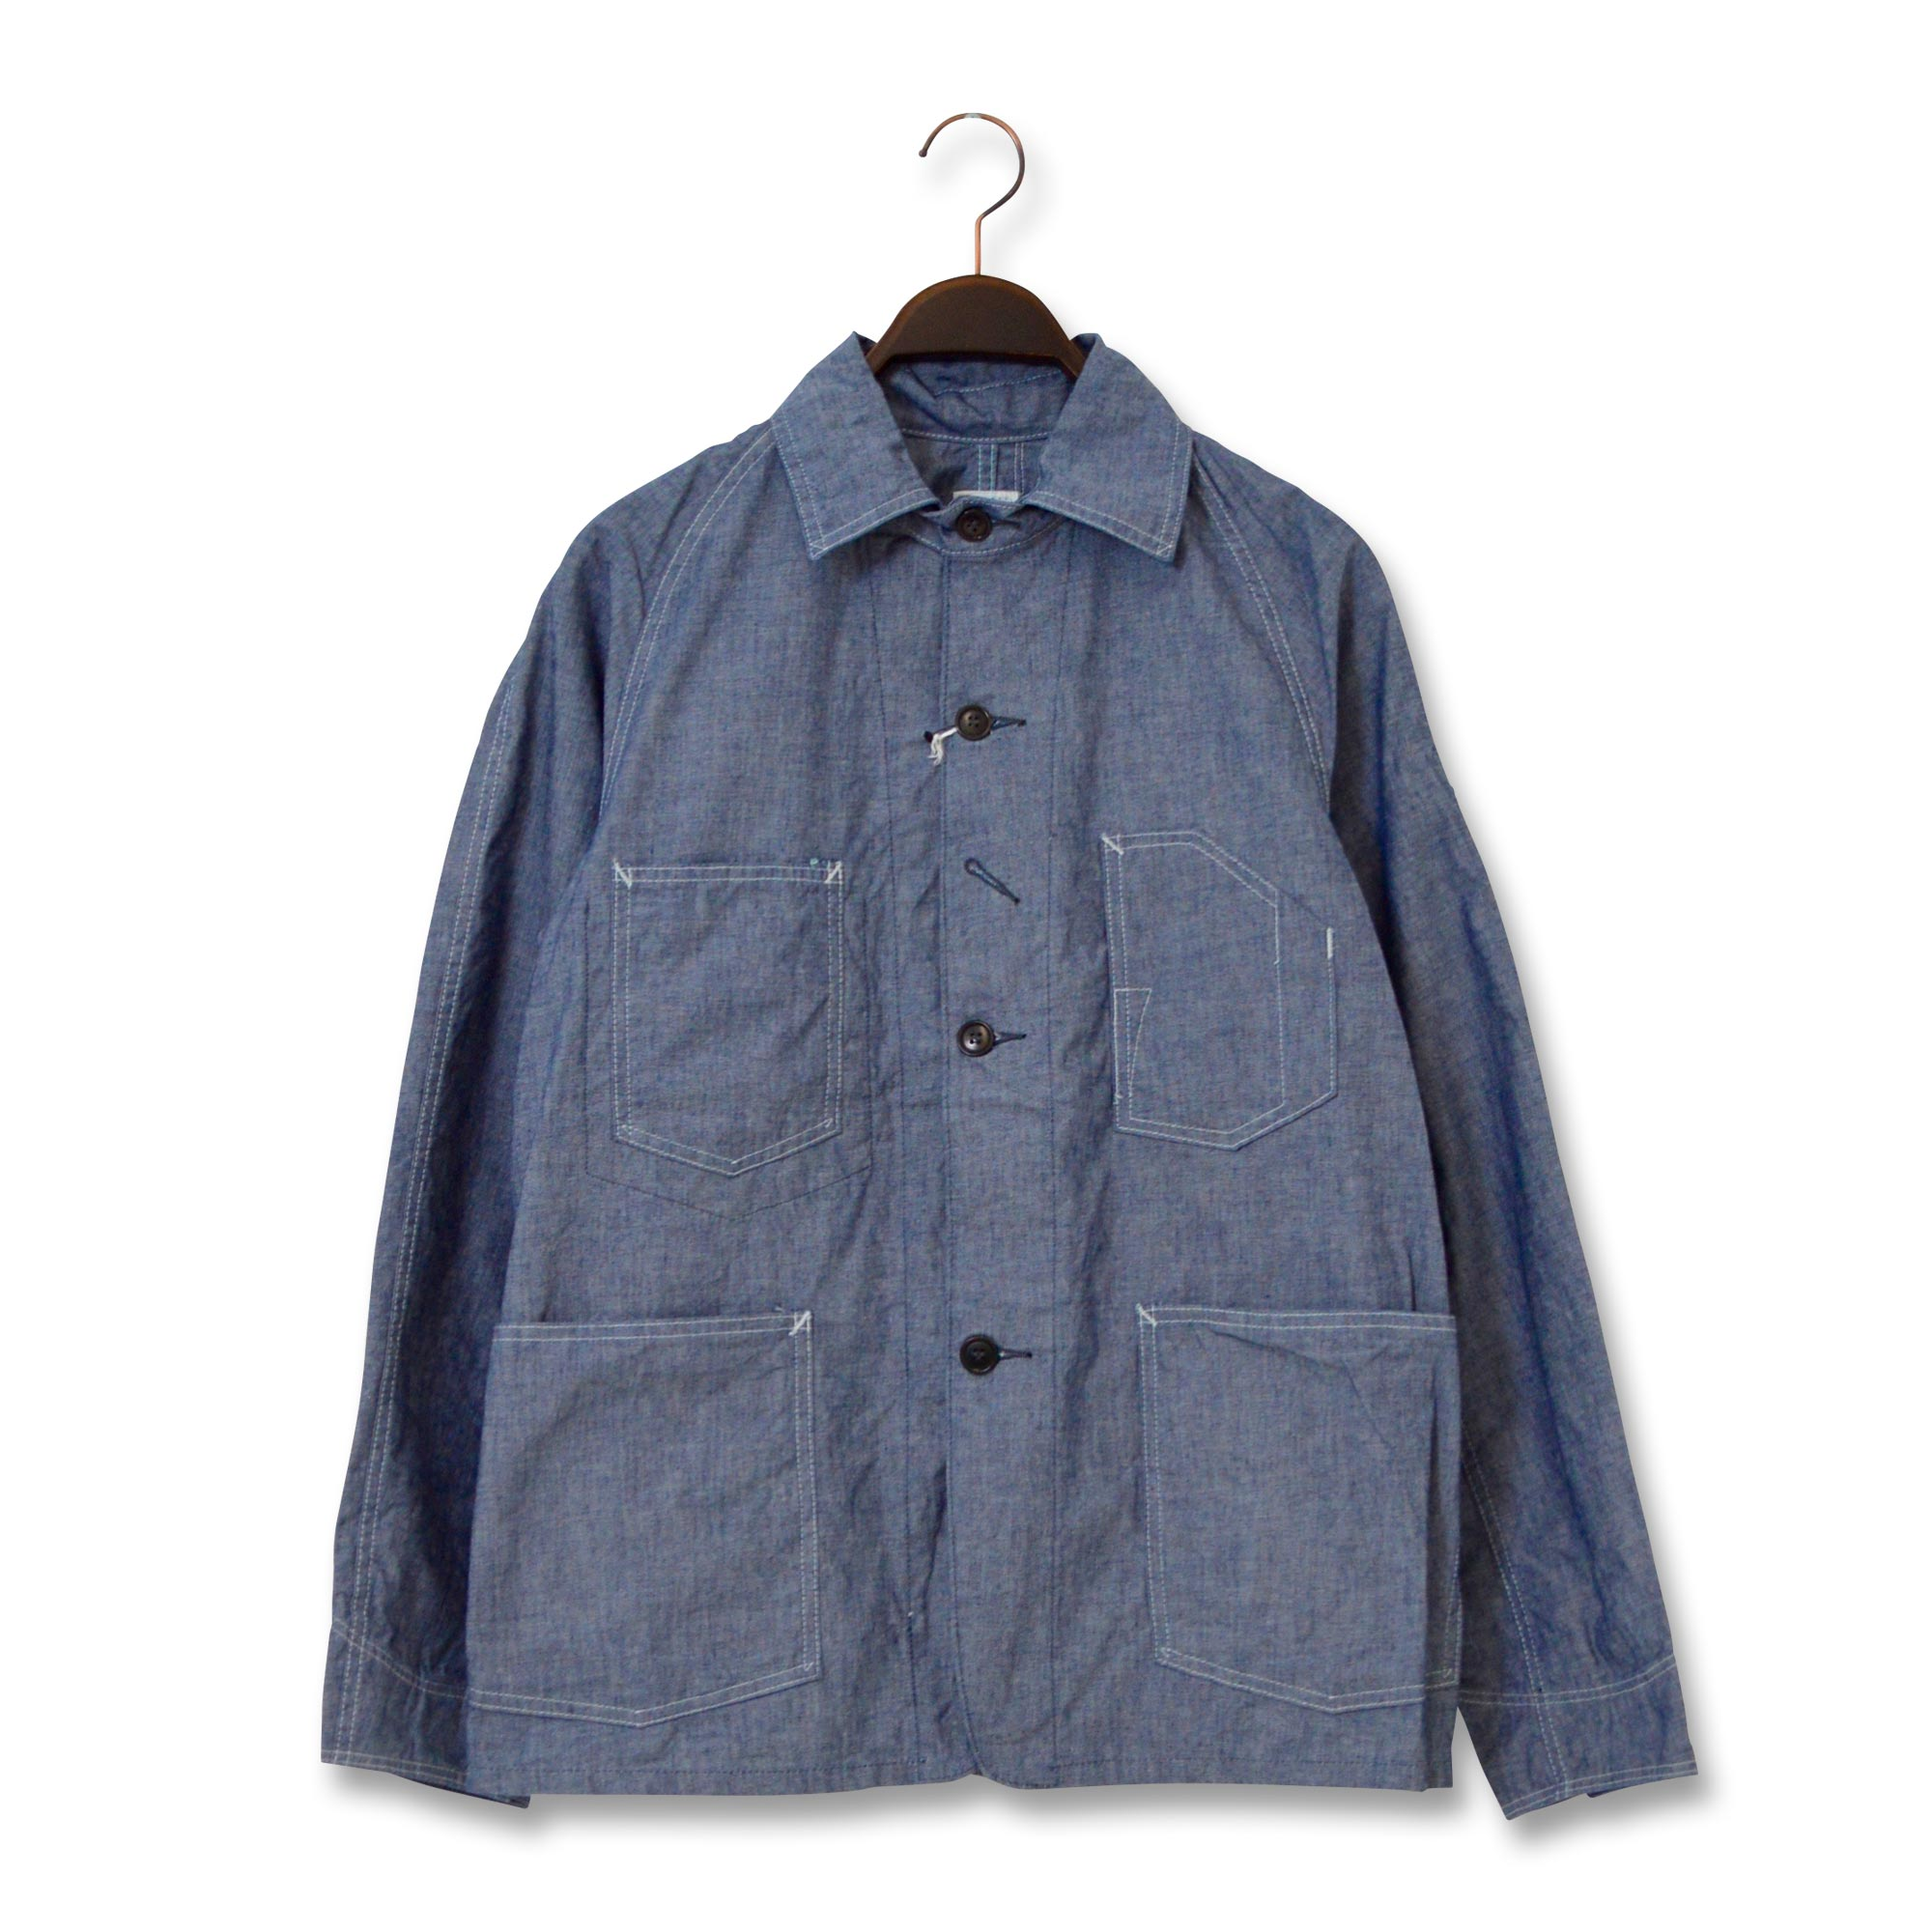 POST OVERALLS(ポストオーバーオールズ)/1102-XXR ENGINEER'S JACKET-XXR/CONE CHAMBRAY